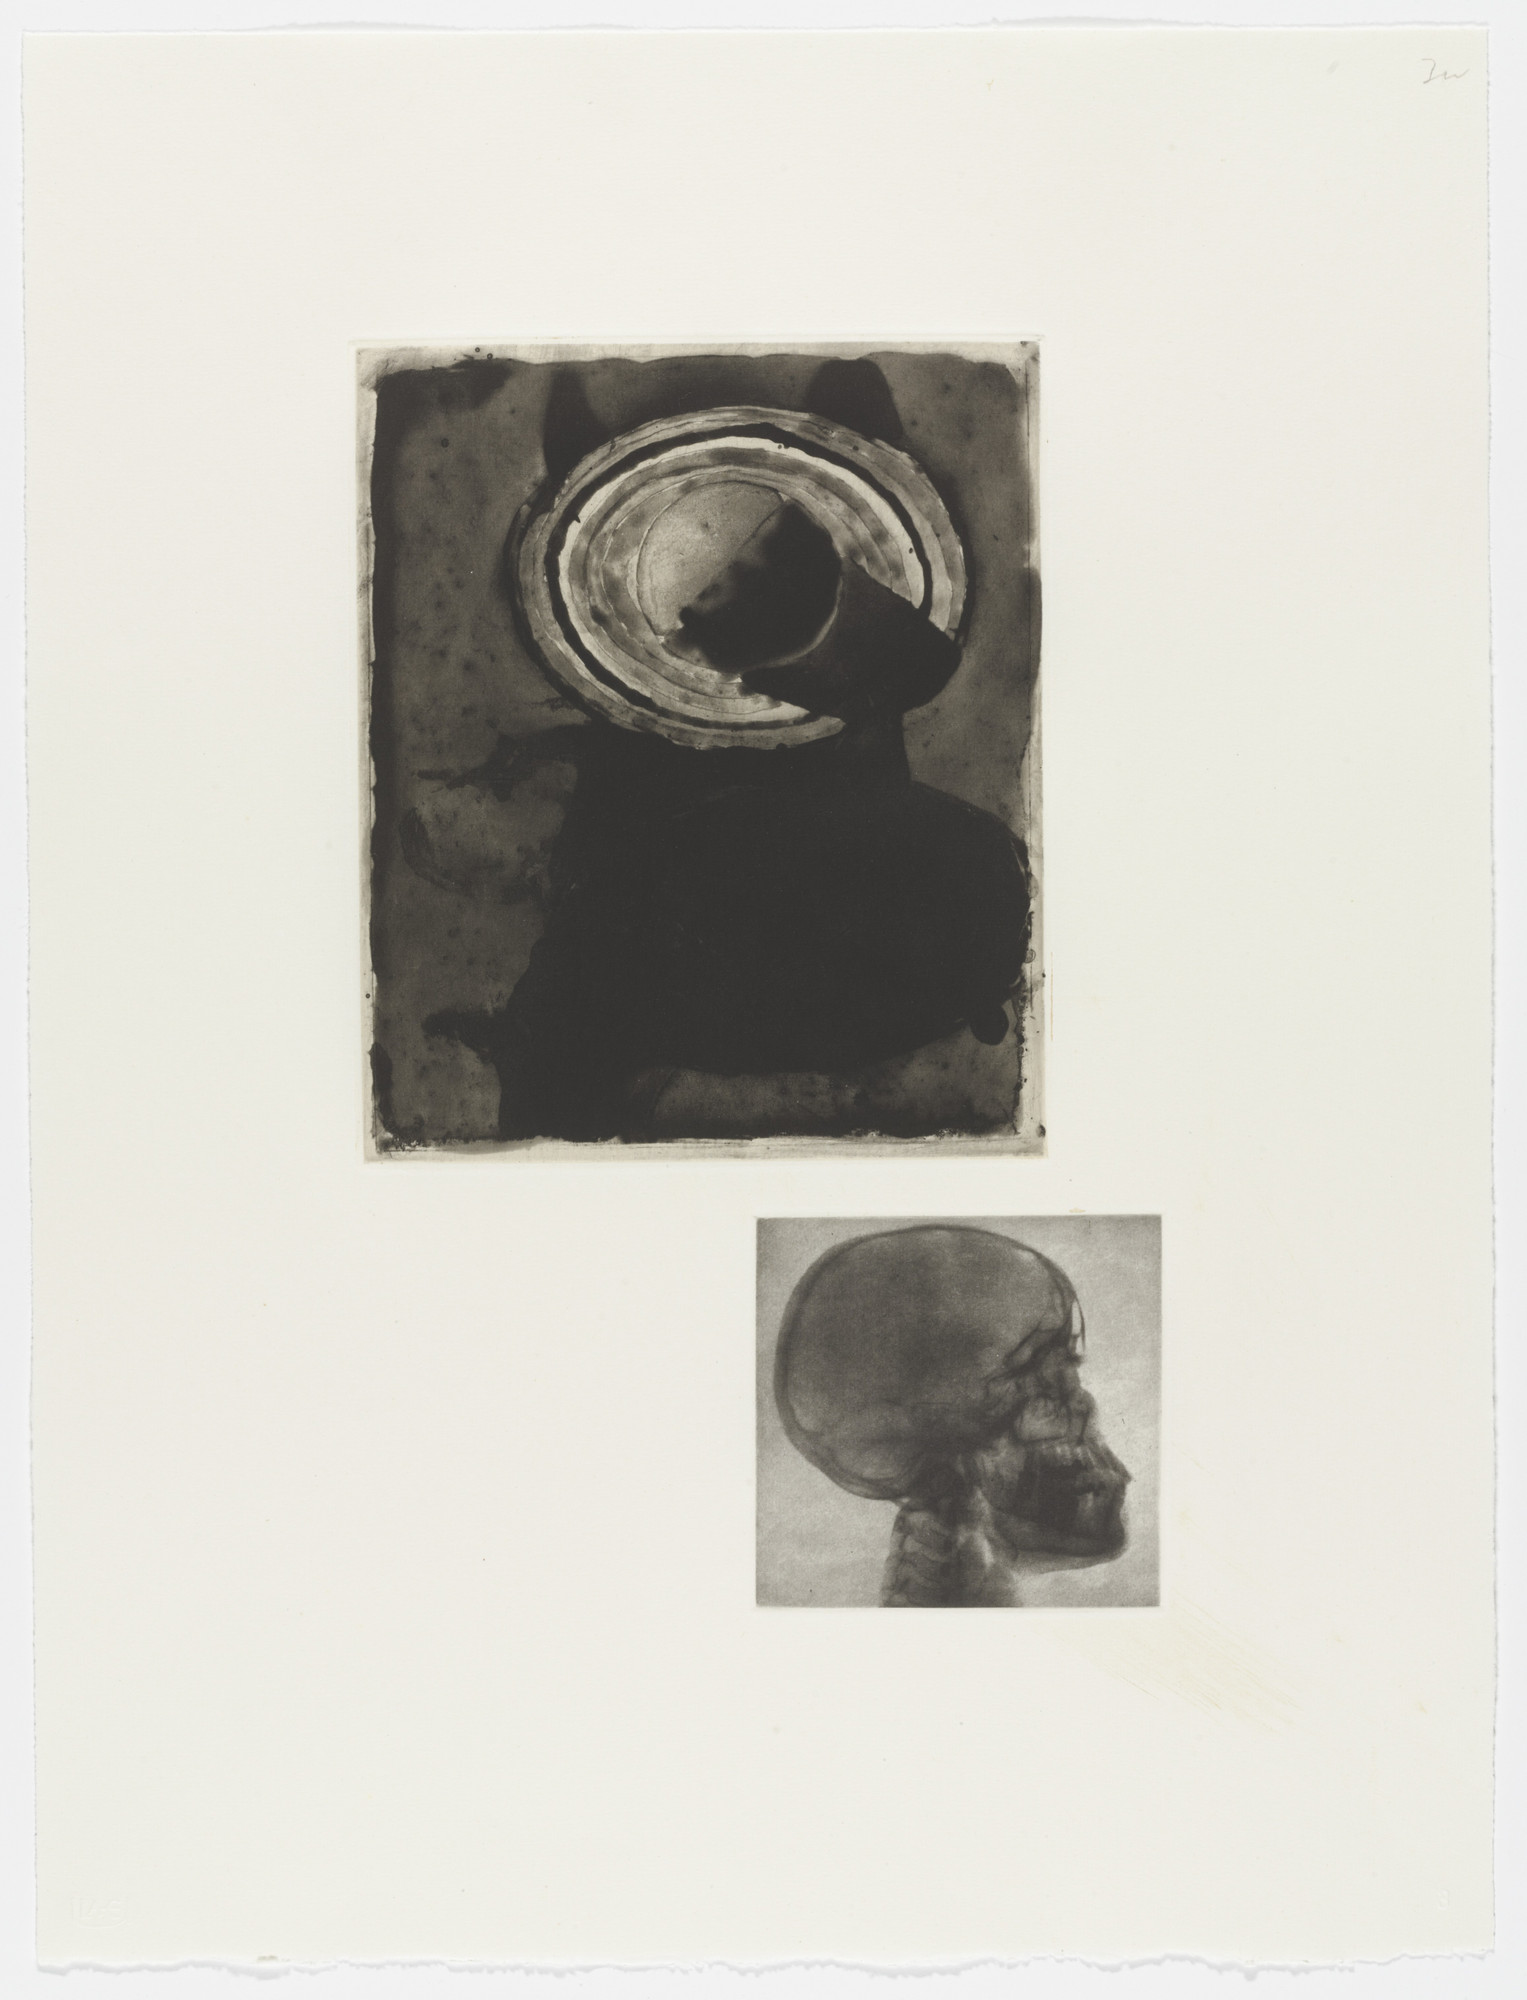 Terry Winters. Fourteen Etchings 3. 1989